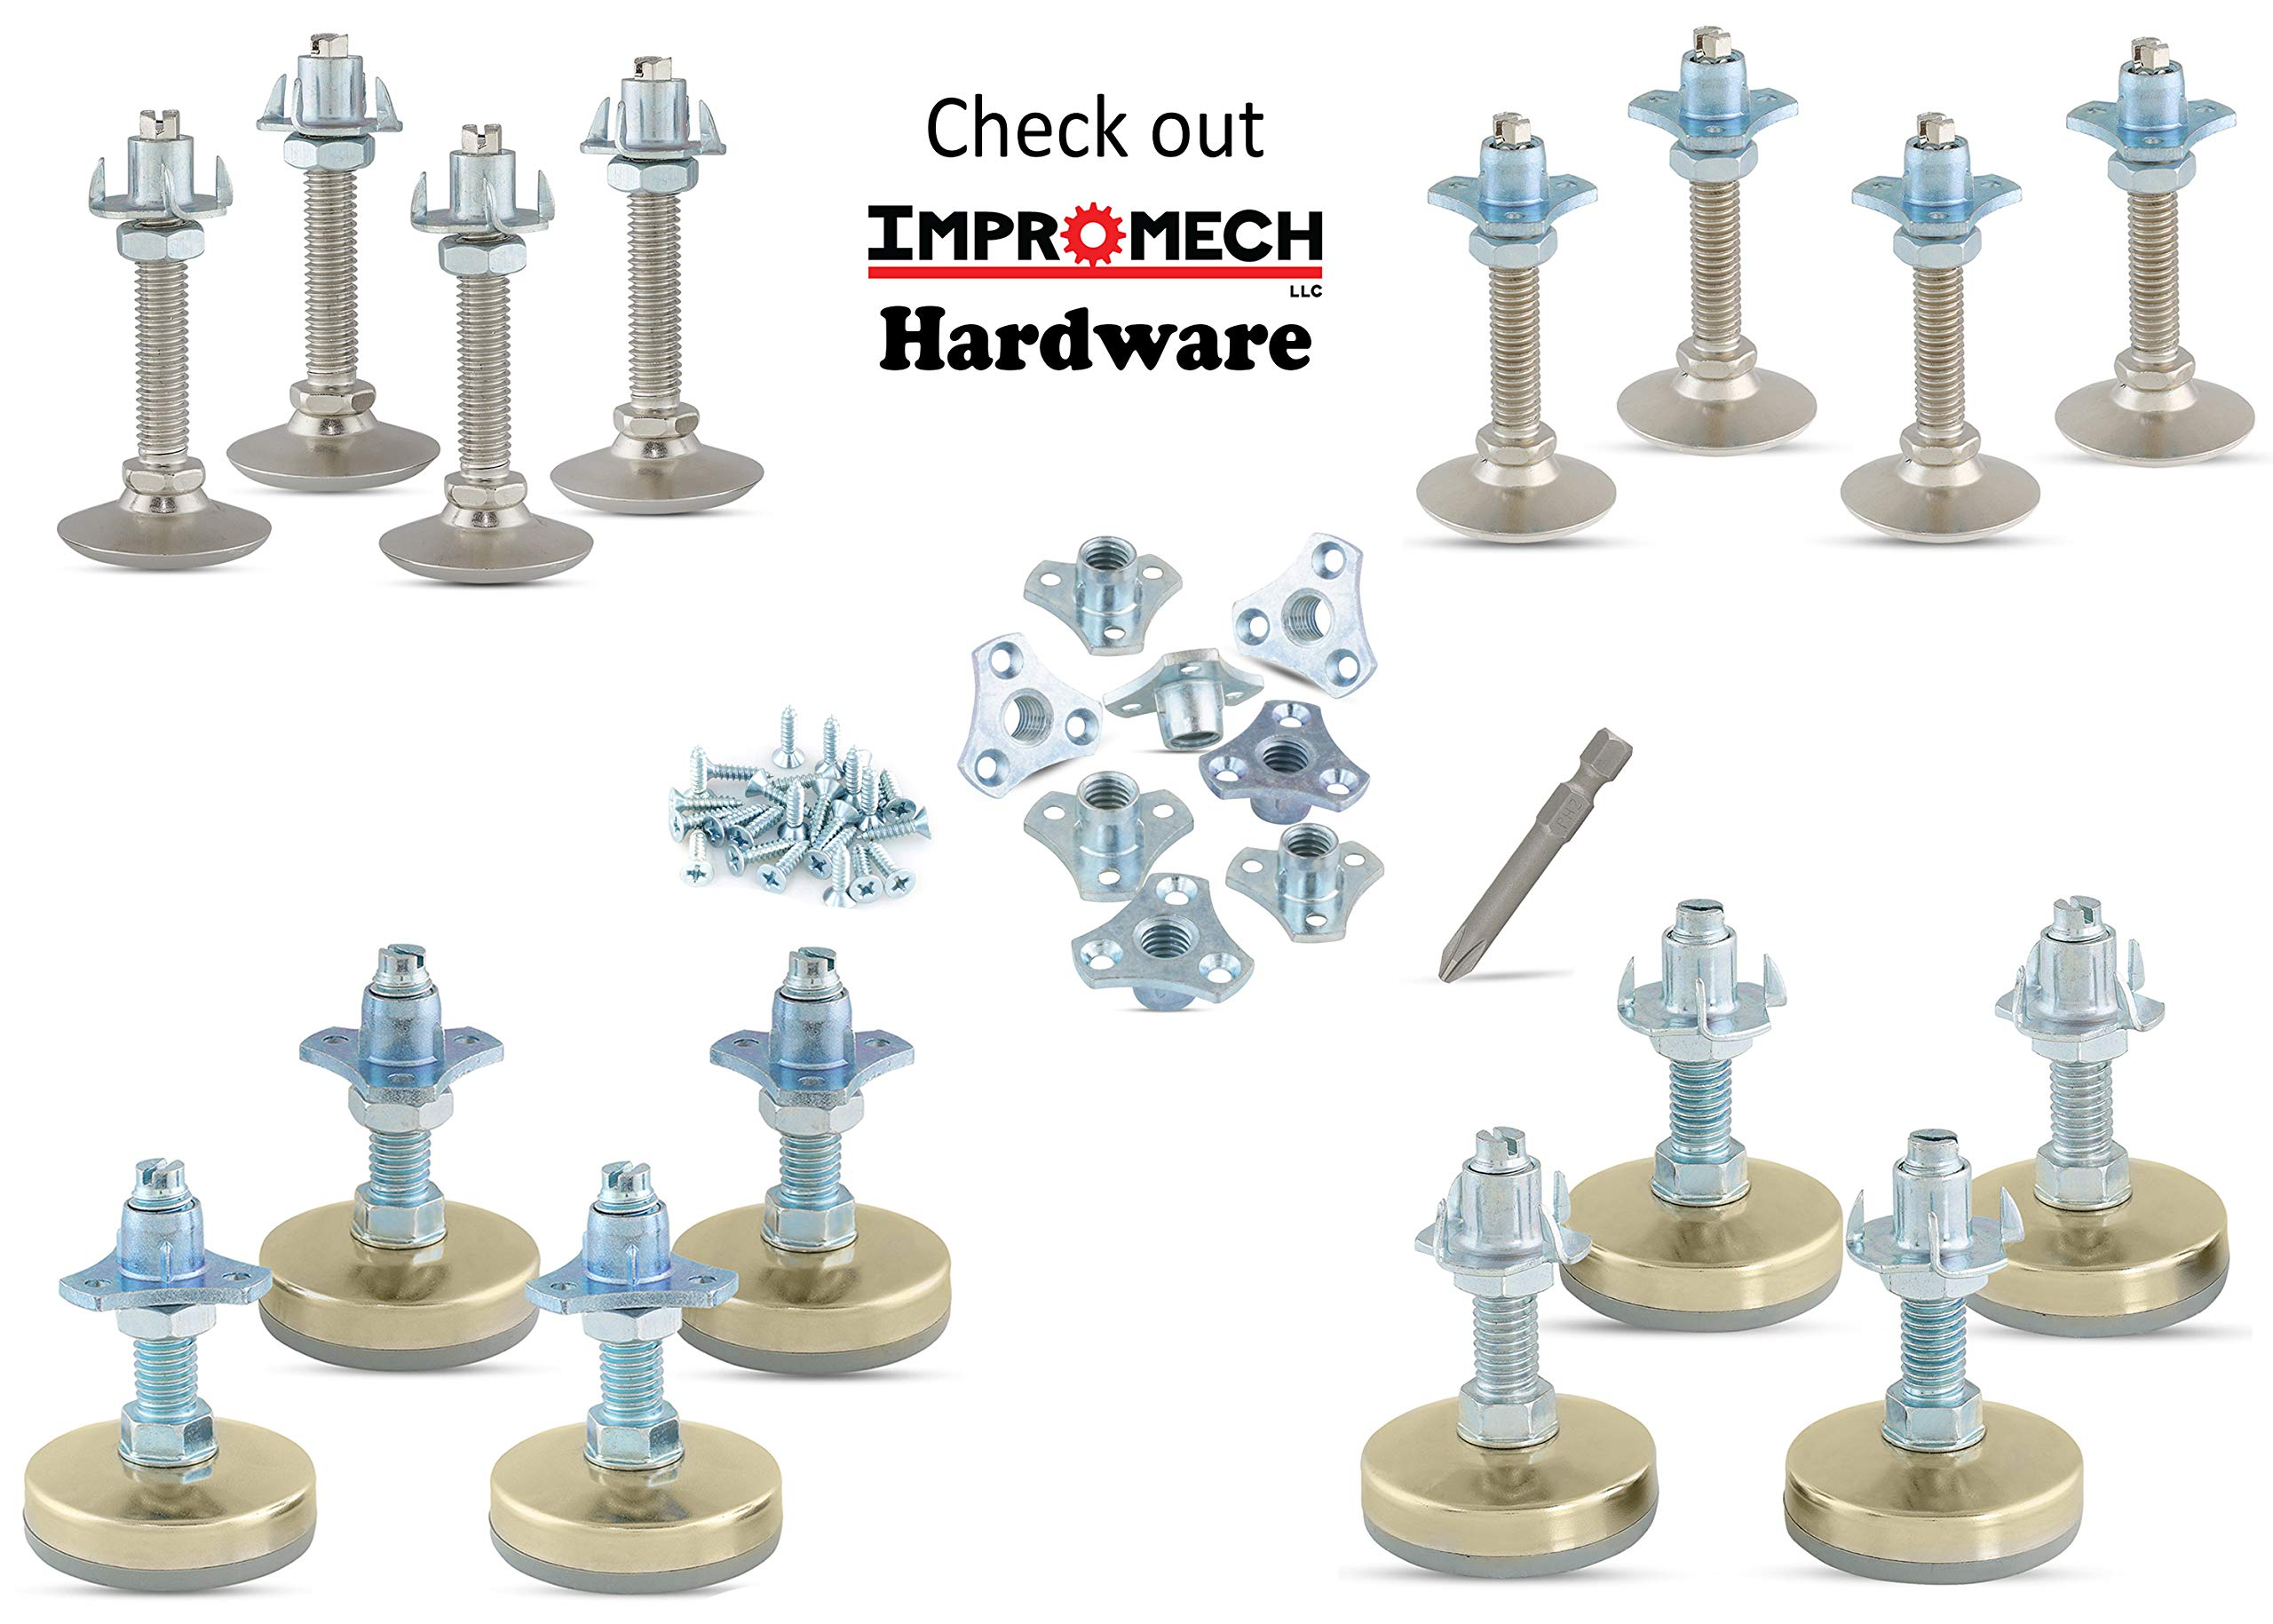 Heavy Duty Furniture Leveler Tee Nut Kit – Set of 4-3/8-16 Non-Skid Leg Levelers for Cabinets or Tables to Adjust Height of The Legs or Feet Jam Nuts to Stabilize Each Foot (Kit with 4 Prong T-Nuts) by Impromech Hardware (Image #6)